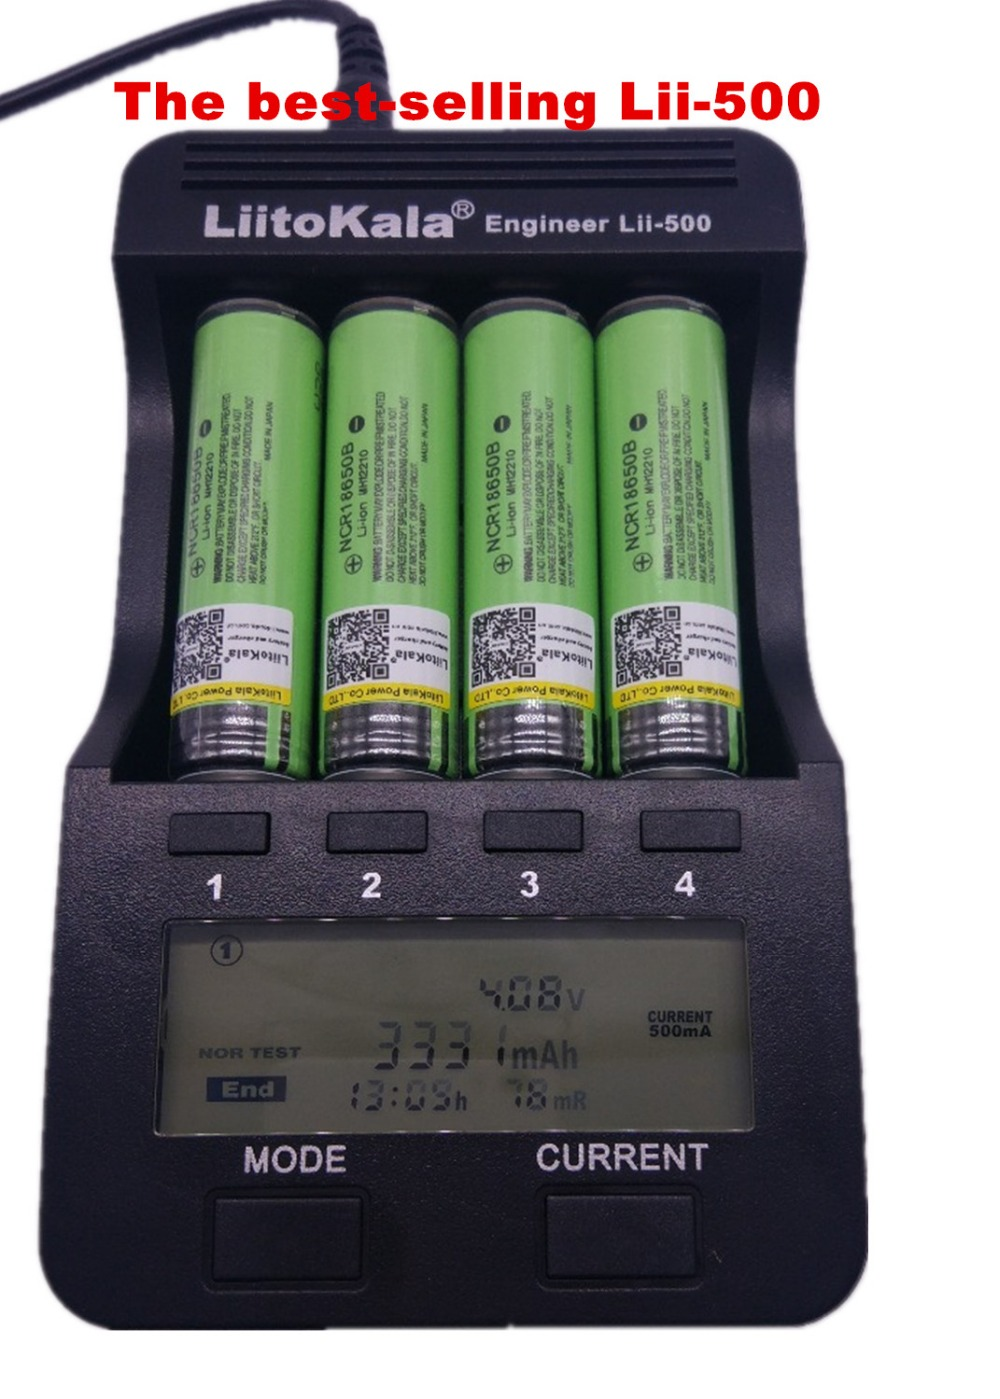 2018 new LiitoKala lii-500 LCD Charger for 3.7V 1.2V 18500 26650 16340 14500 10440 18650Battery ,100% original Smart Charger